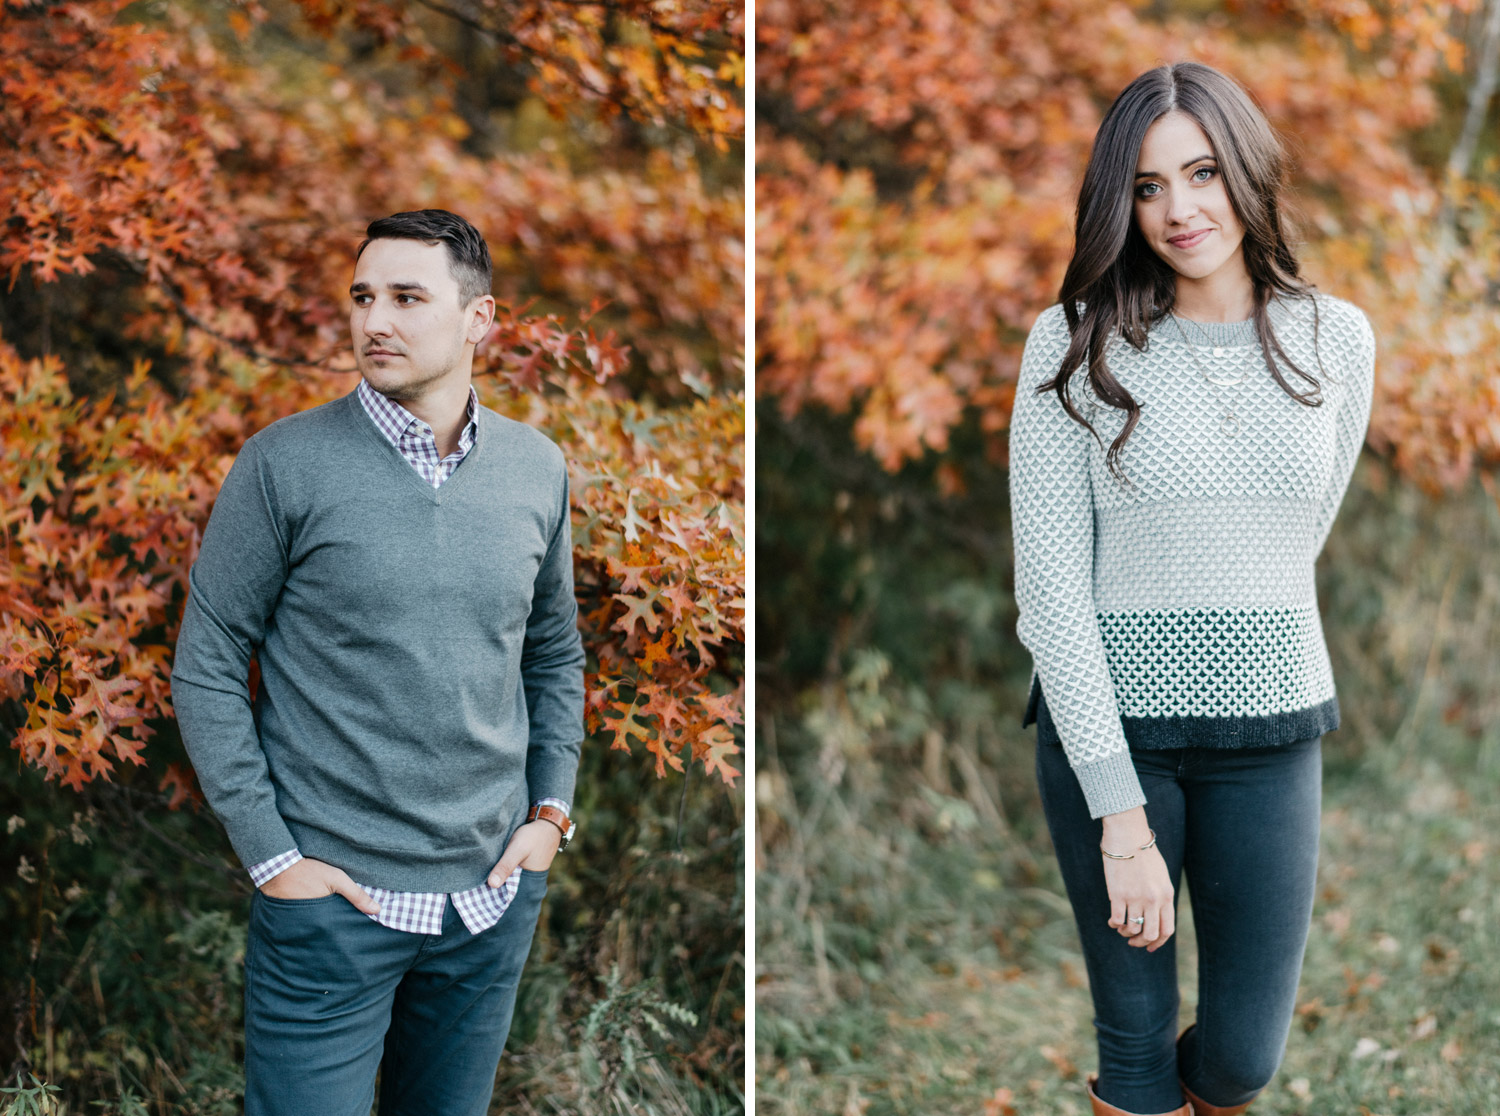 Fall engagement photography by geneoh